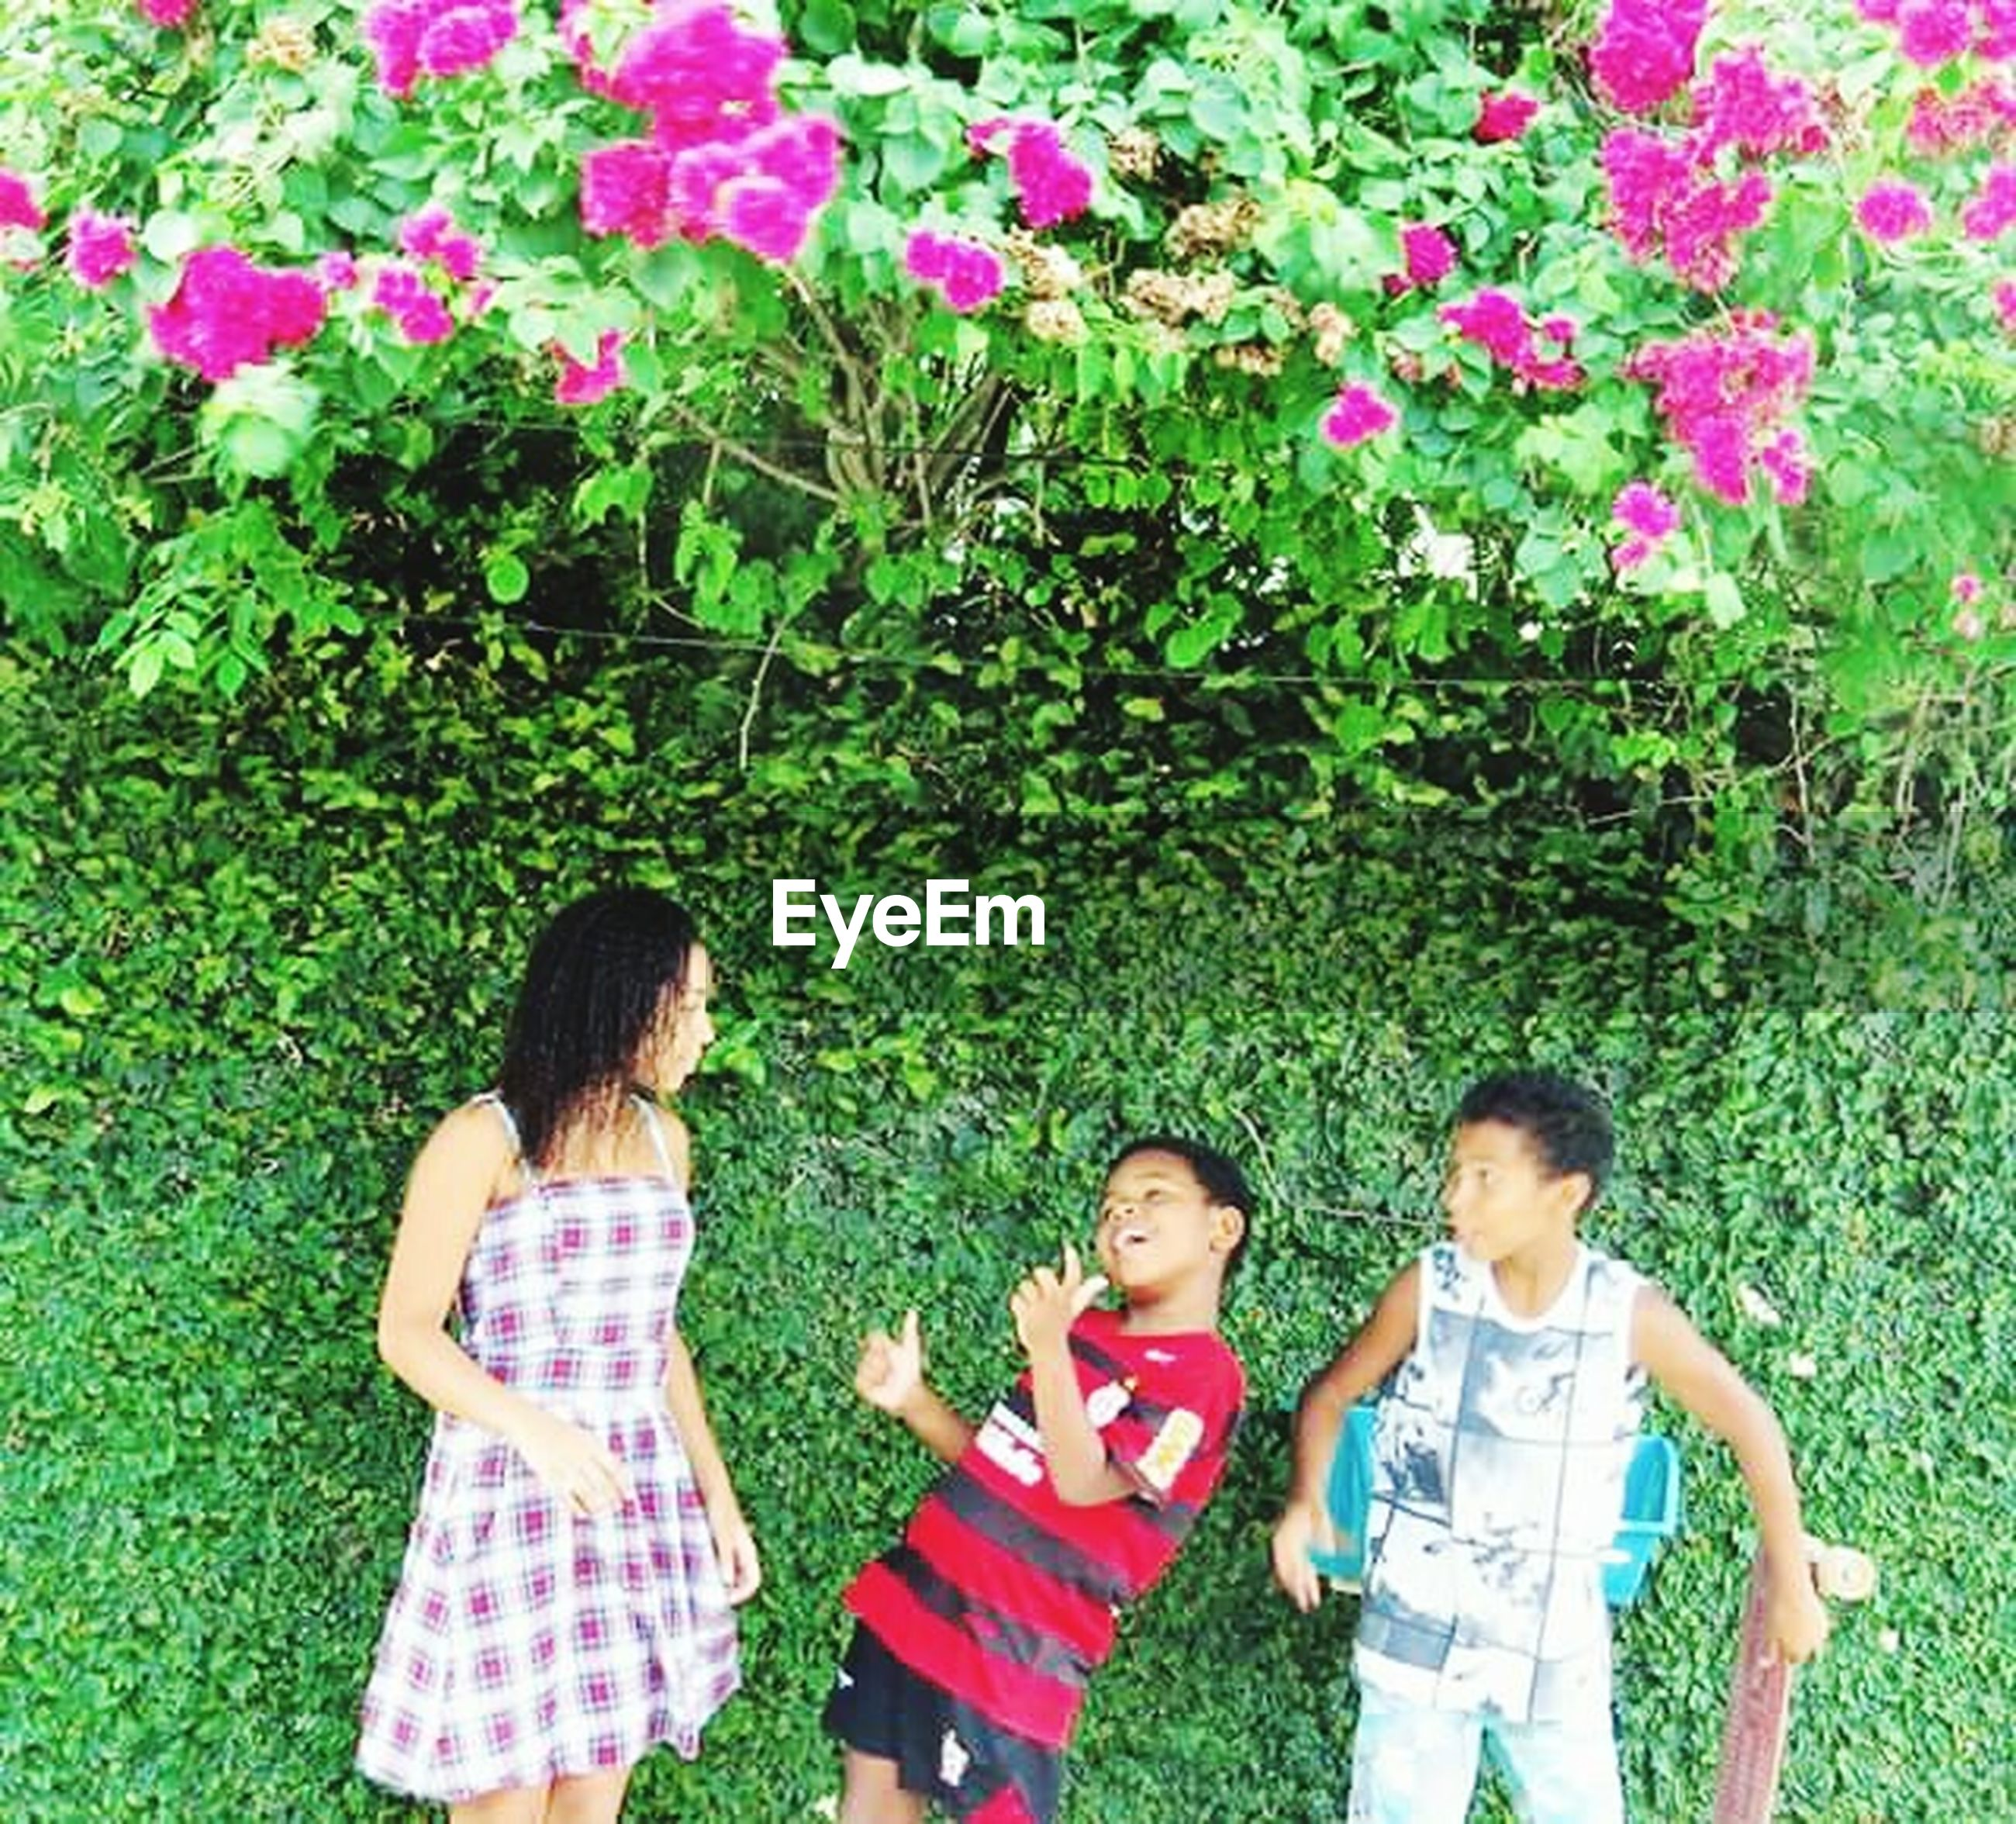 lifestyles, childhood, leisure activity, togetherness, bonding, girls, elementary age, love, casual clothing, boys, grass, family, innocence, park - man made space, person, sitting, growth, flower